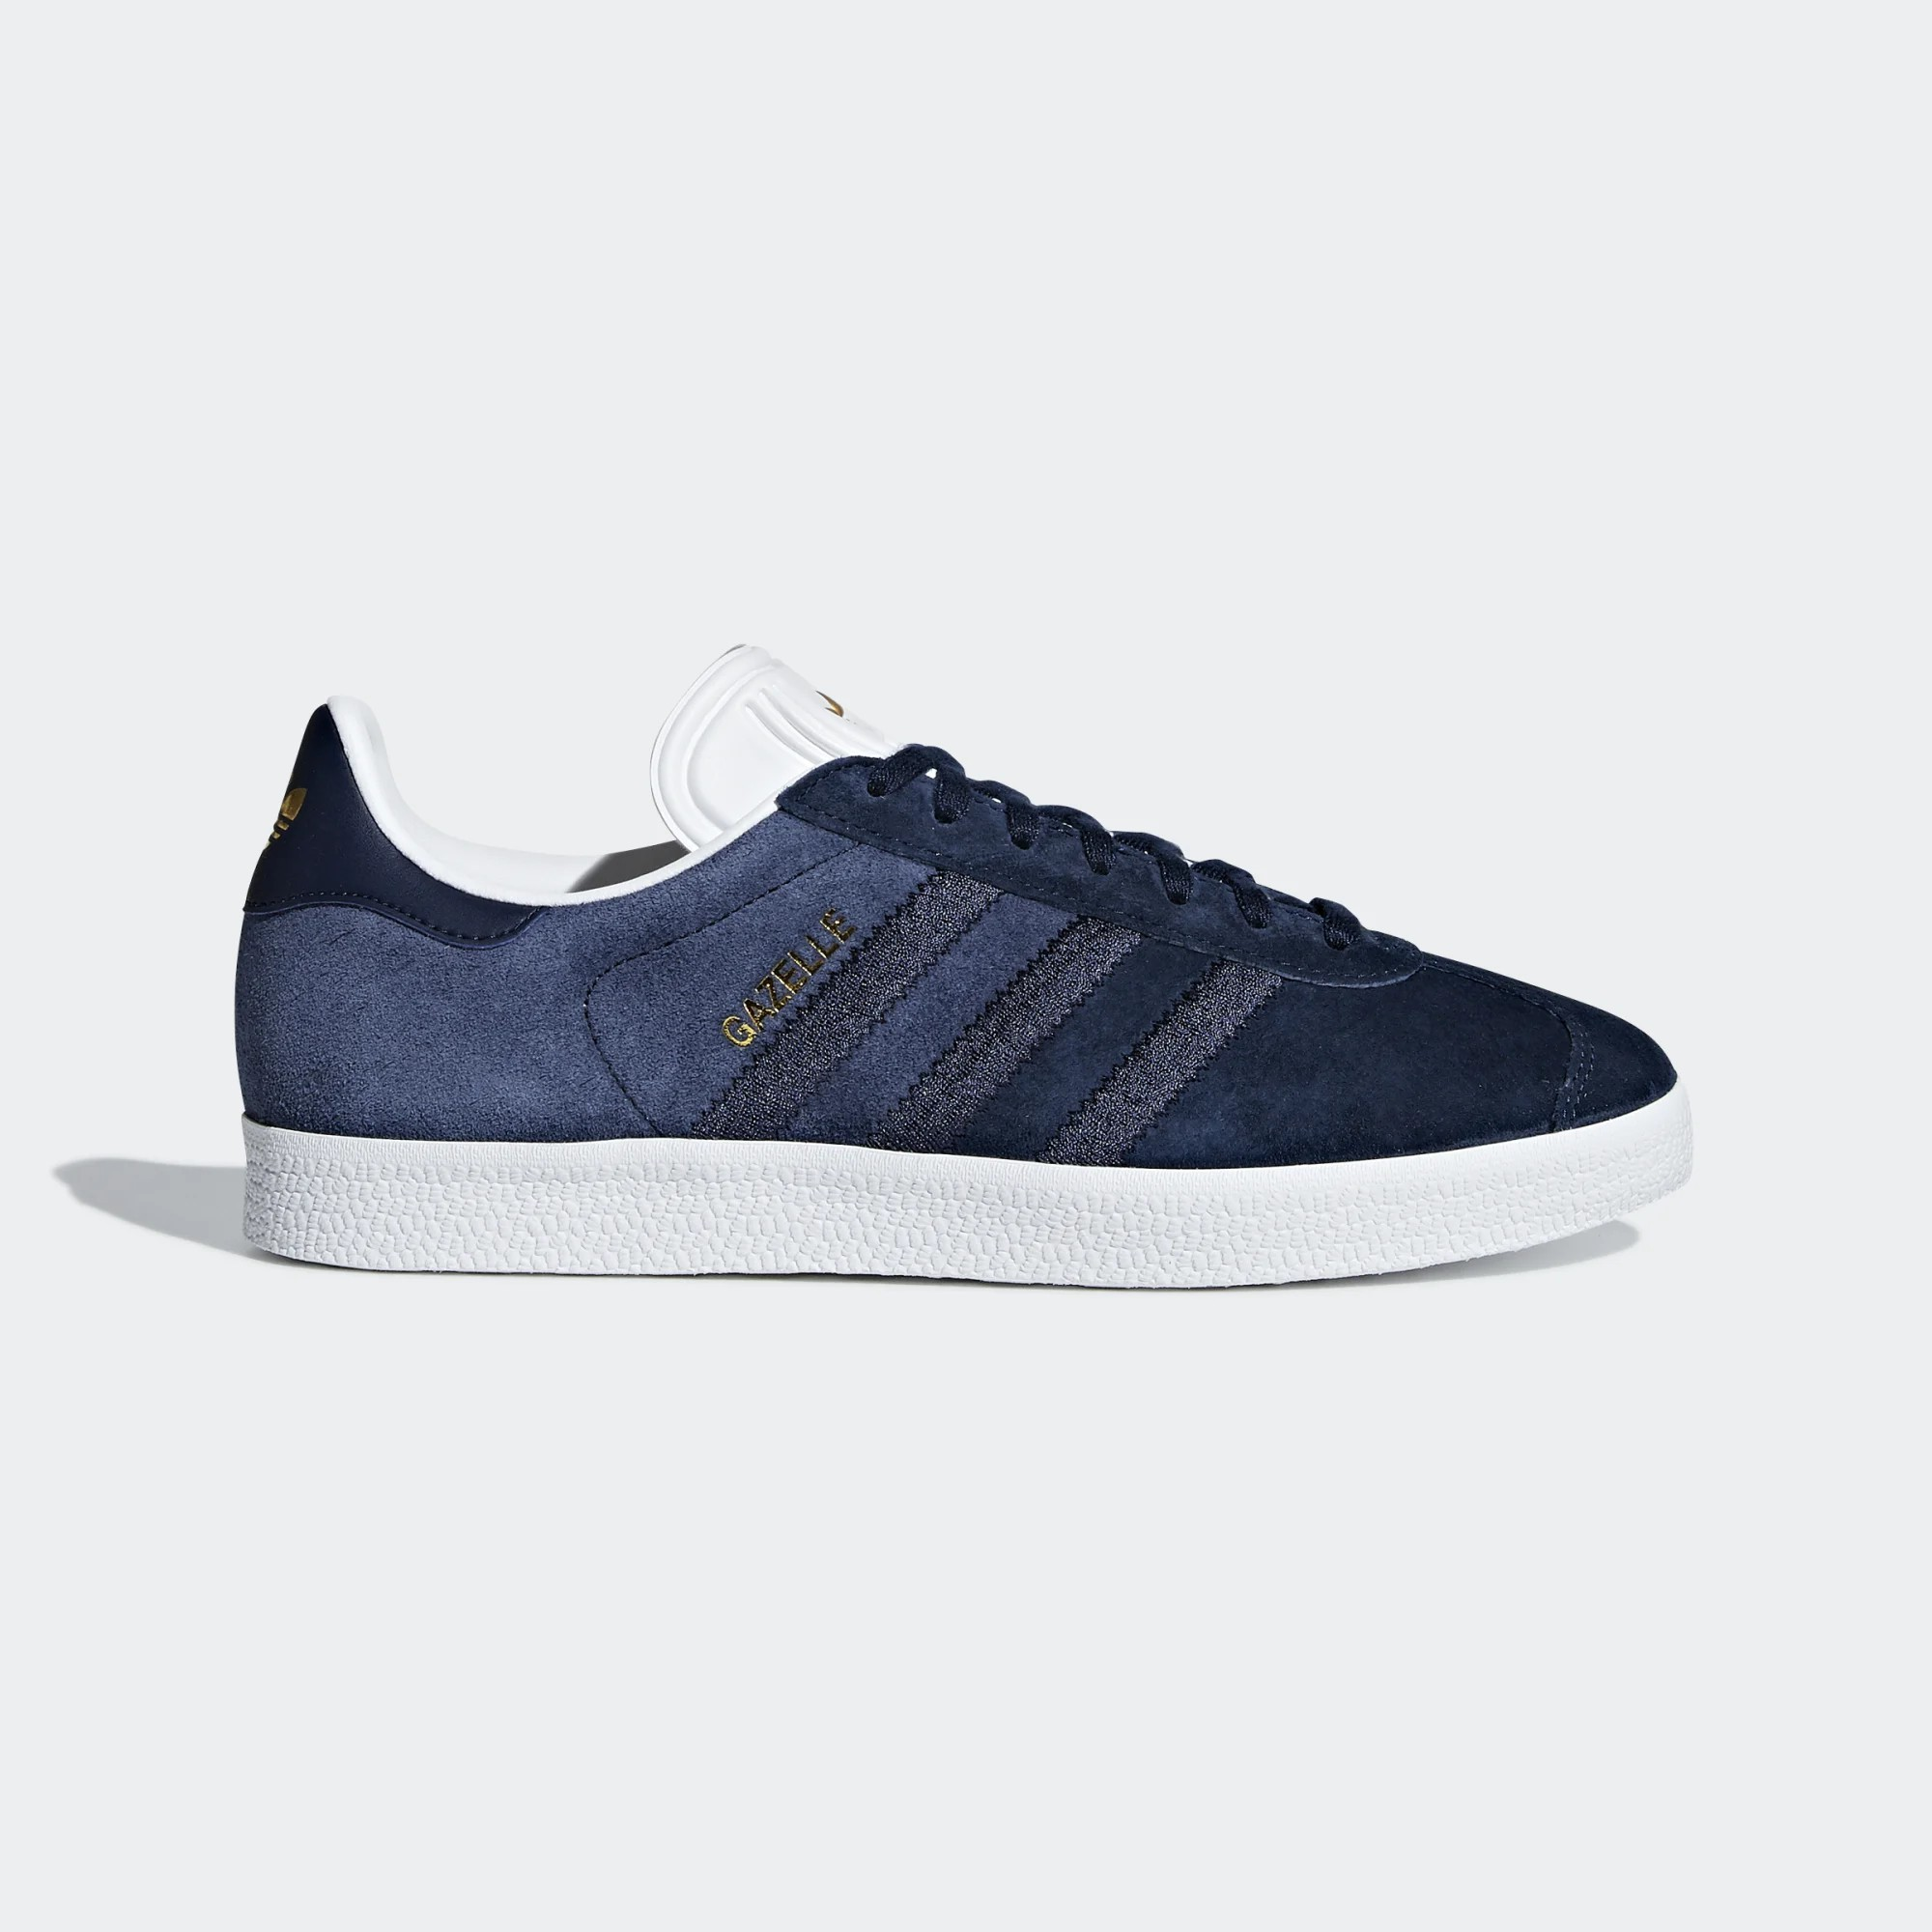 Adidas CG6058 Women Gazelle Casual Shoes Navy White